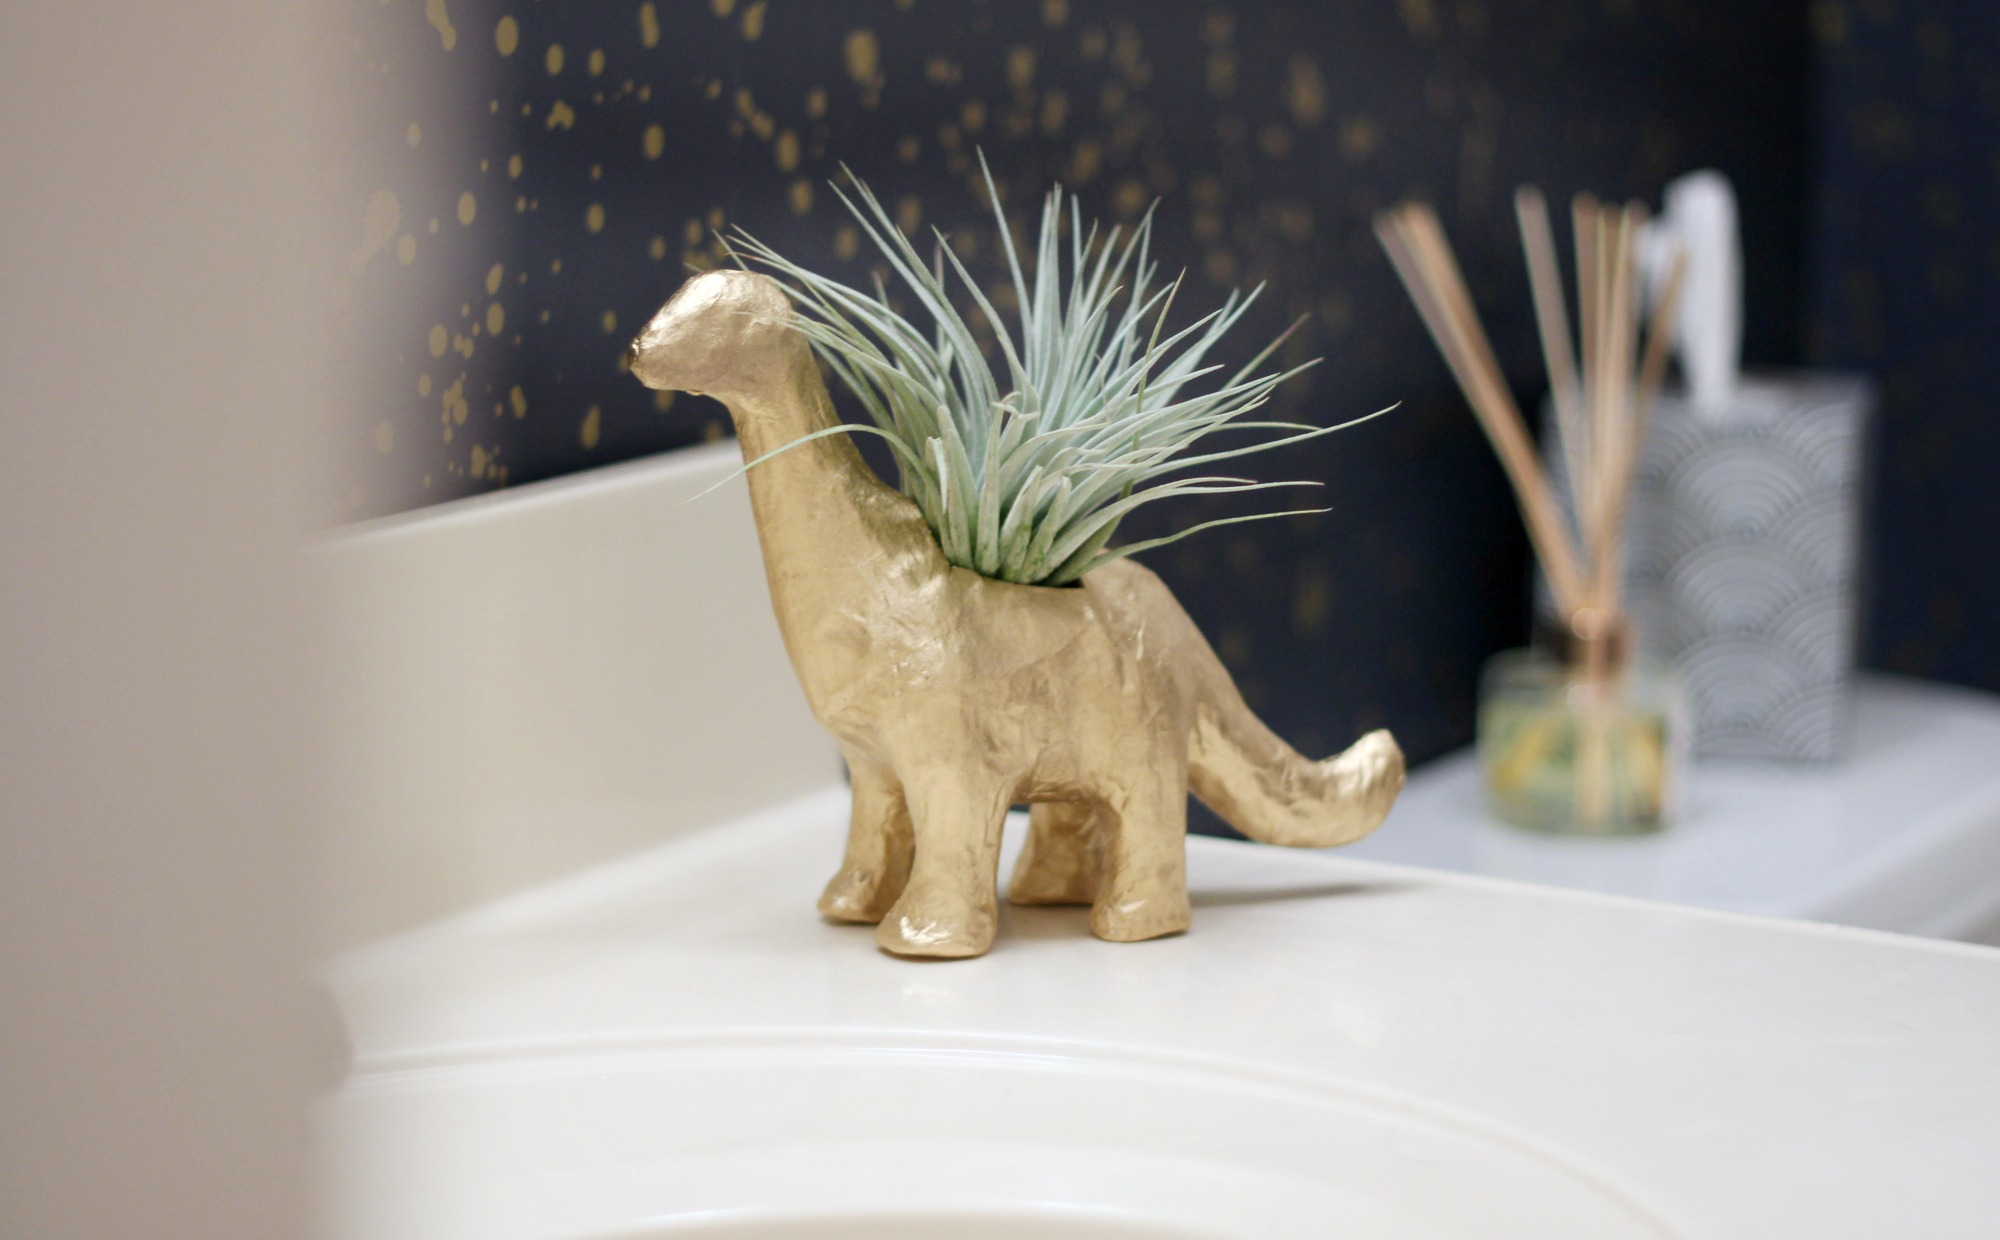 DIY Dinosaur Planter | Air Plant Holder